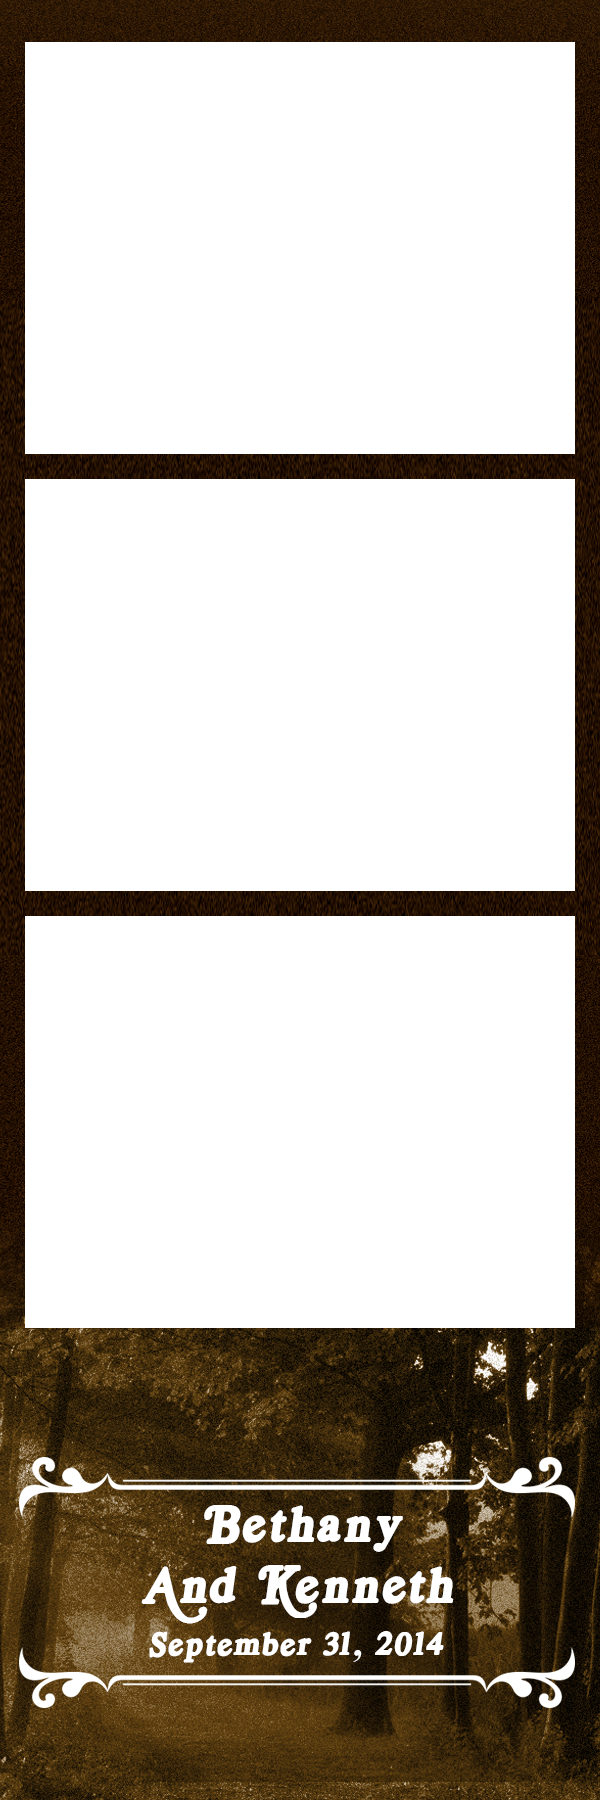 003A_FallLeafBrown_3UP_D1.png